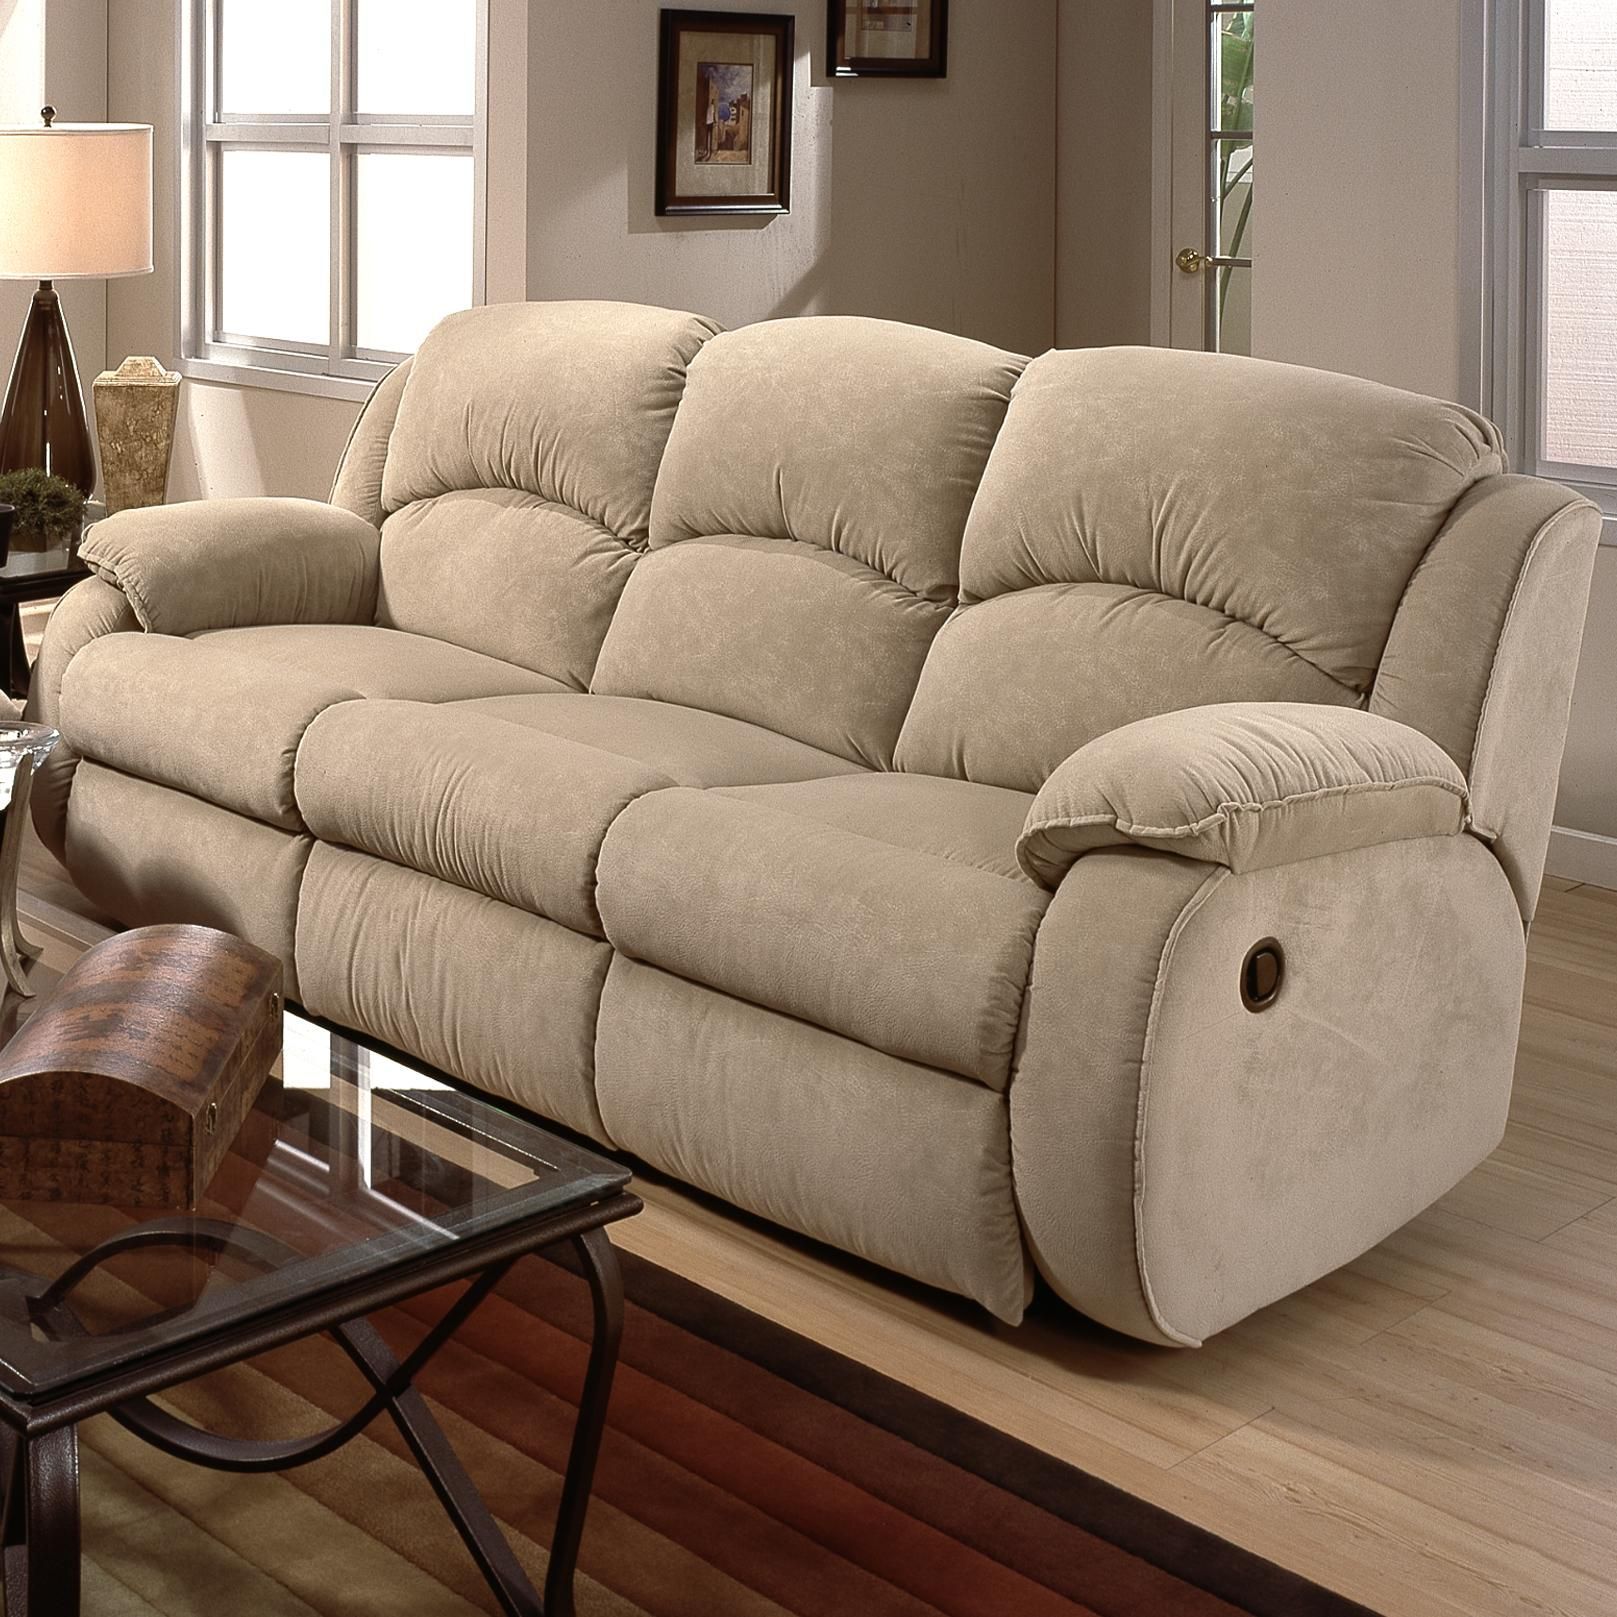 Cagney Powerized Double Reclining Sofa by Southern Motion : motion recliner sofa - islam-shia.org